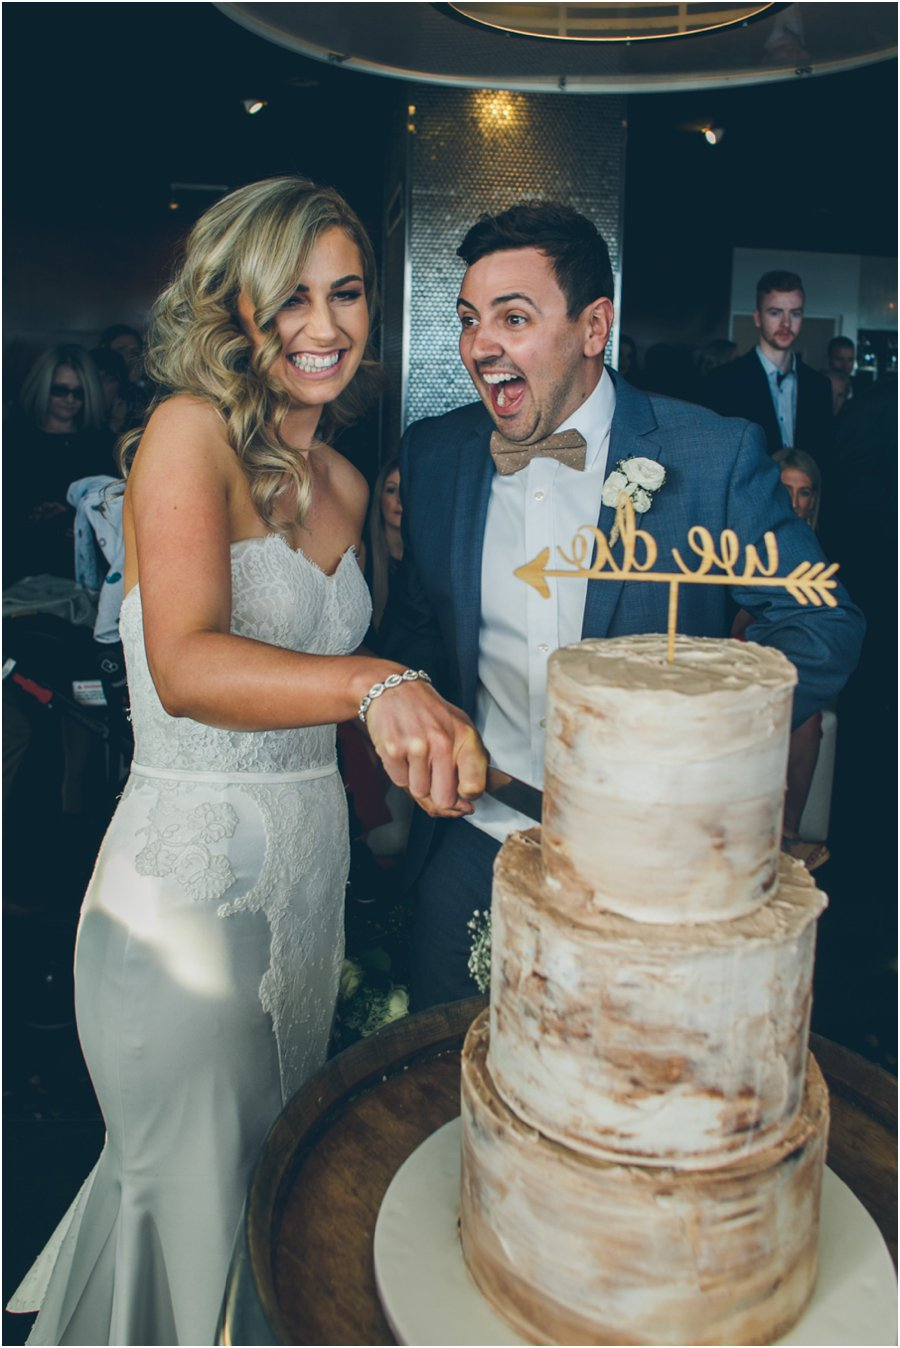 Melbourne Wedding Documentary photographer Coastal beach All Smiles cutting the cake